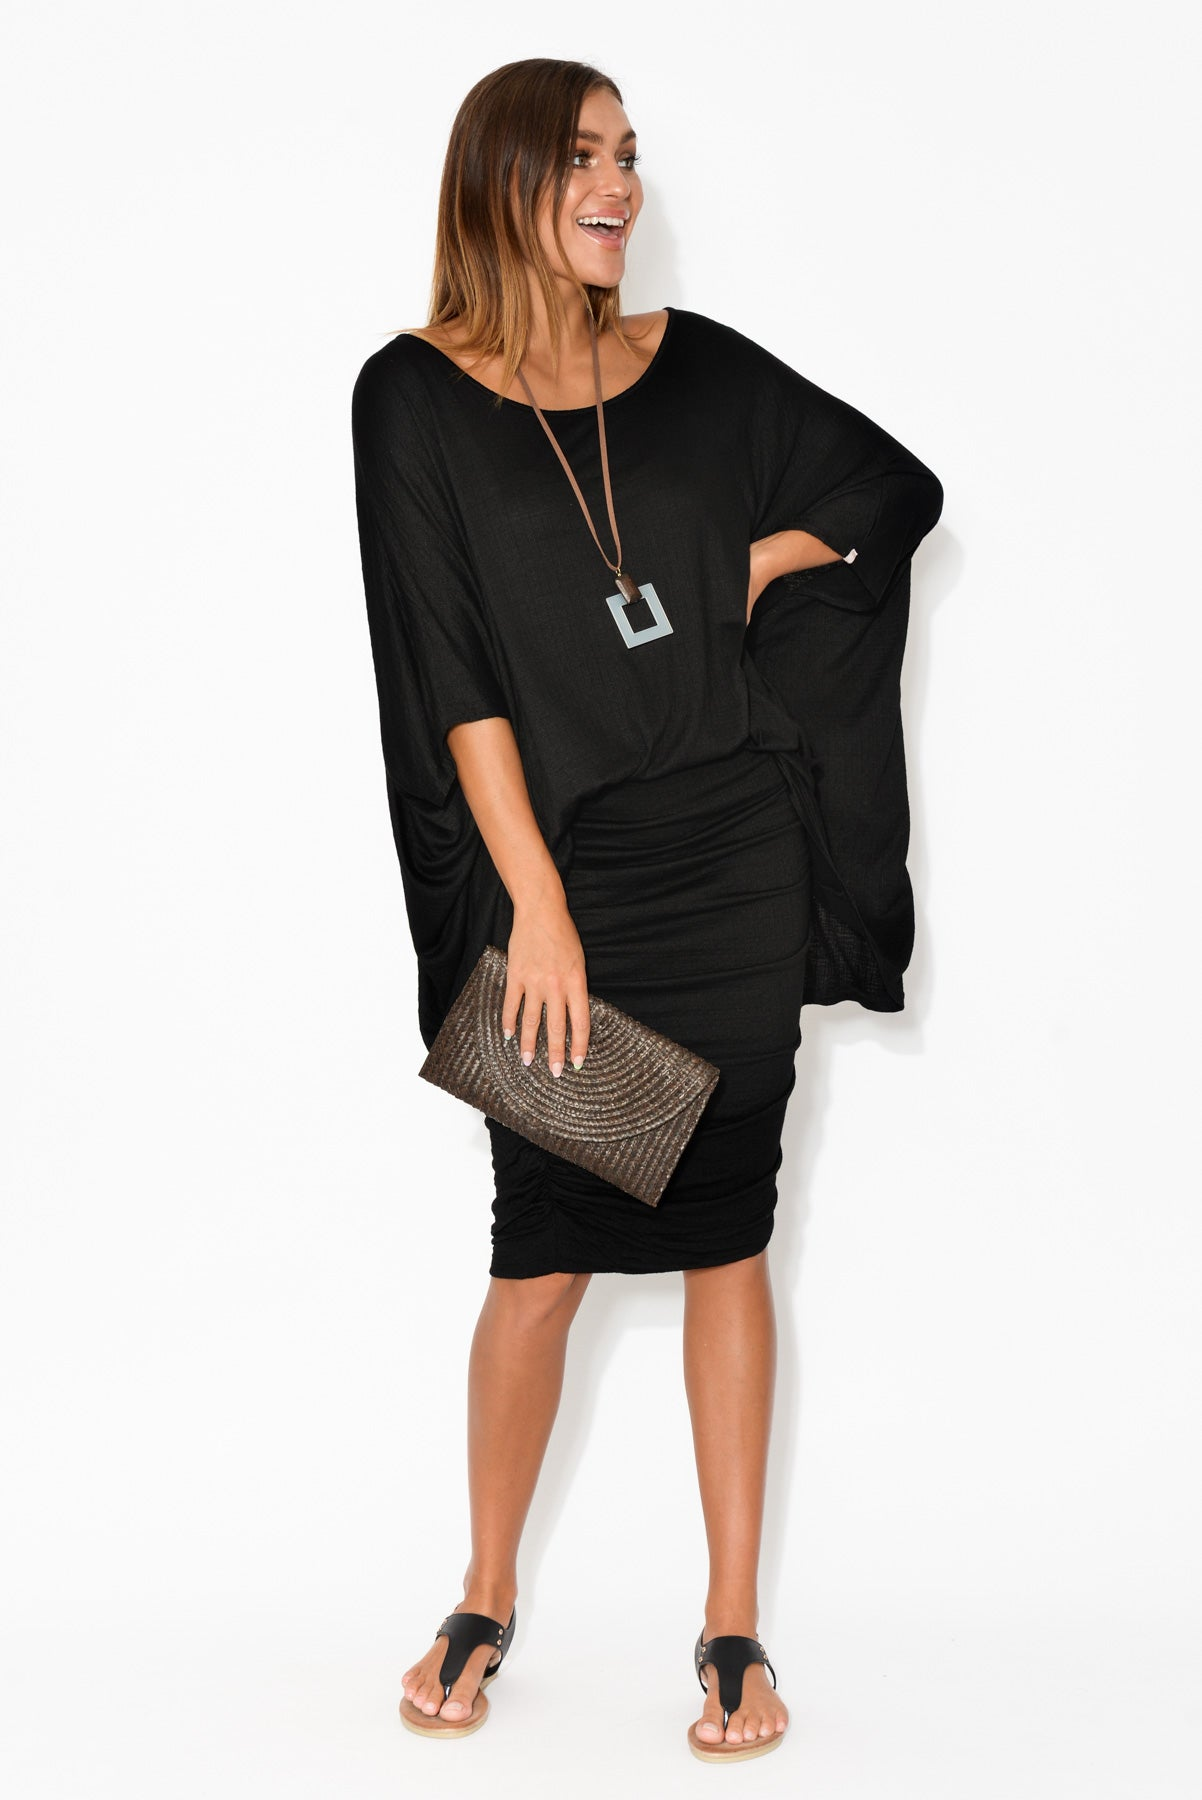 Sorronda Textured Black Batwing Top